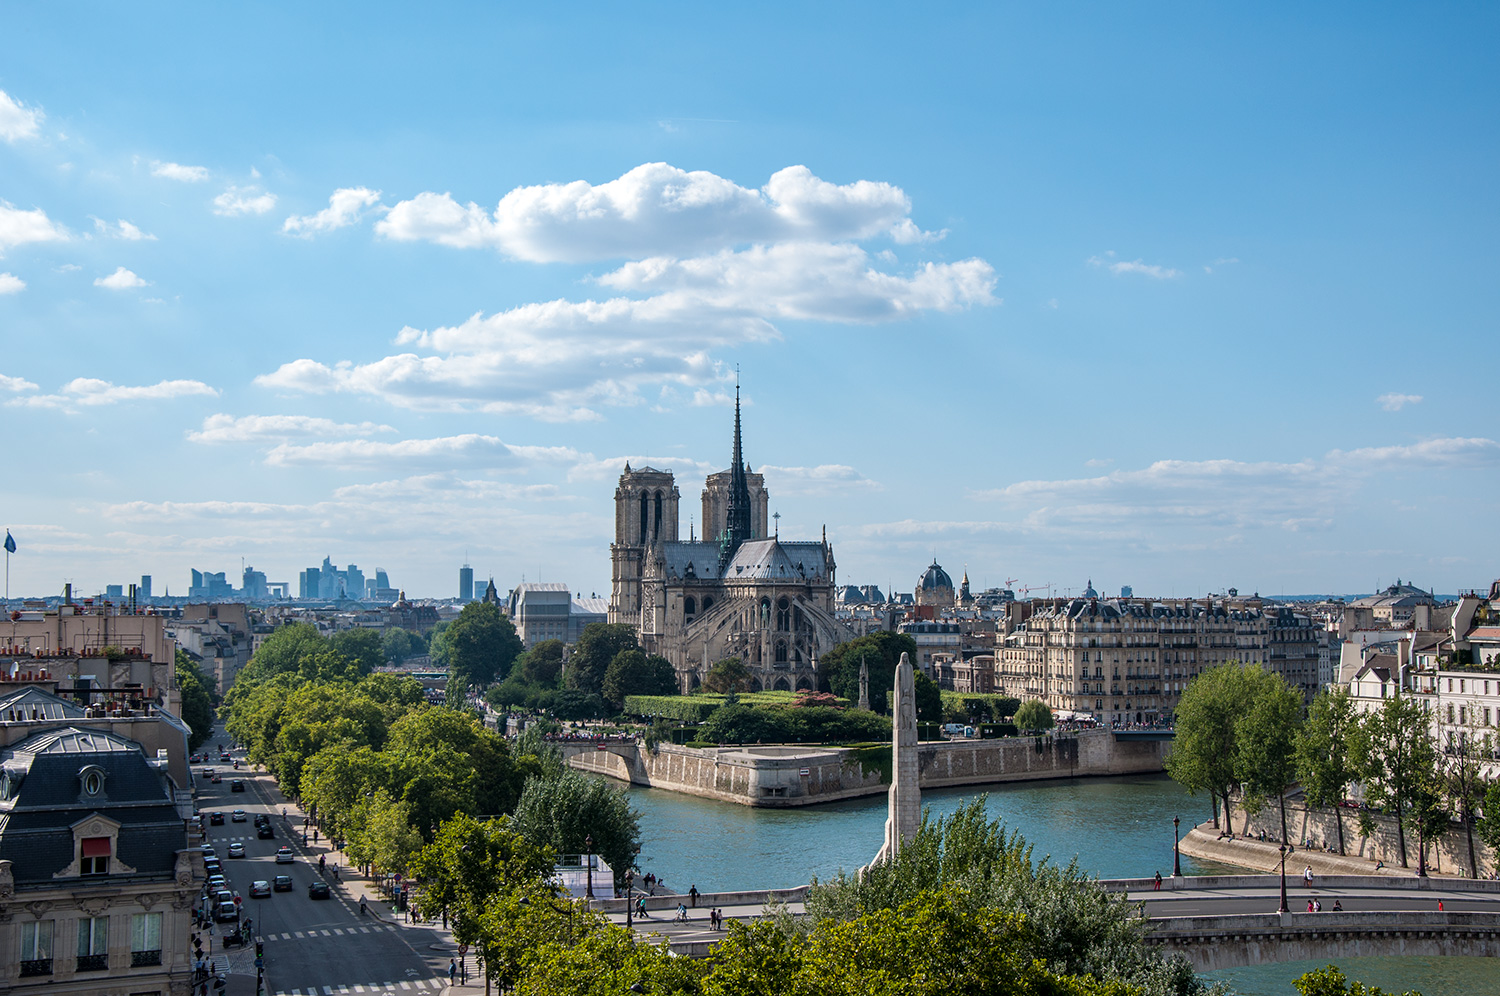 View of Notre-Dame from Arab World Institute